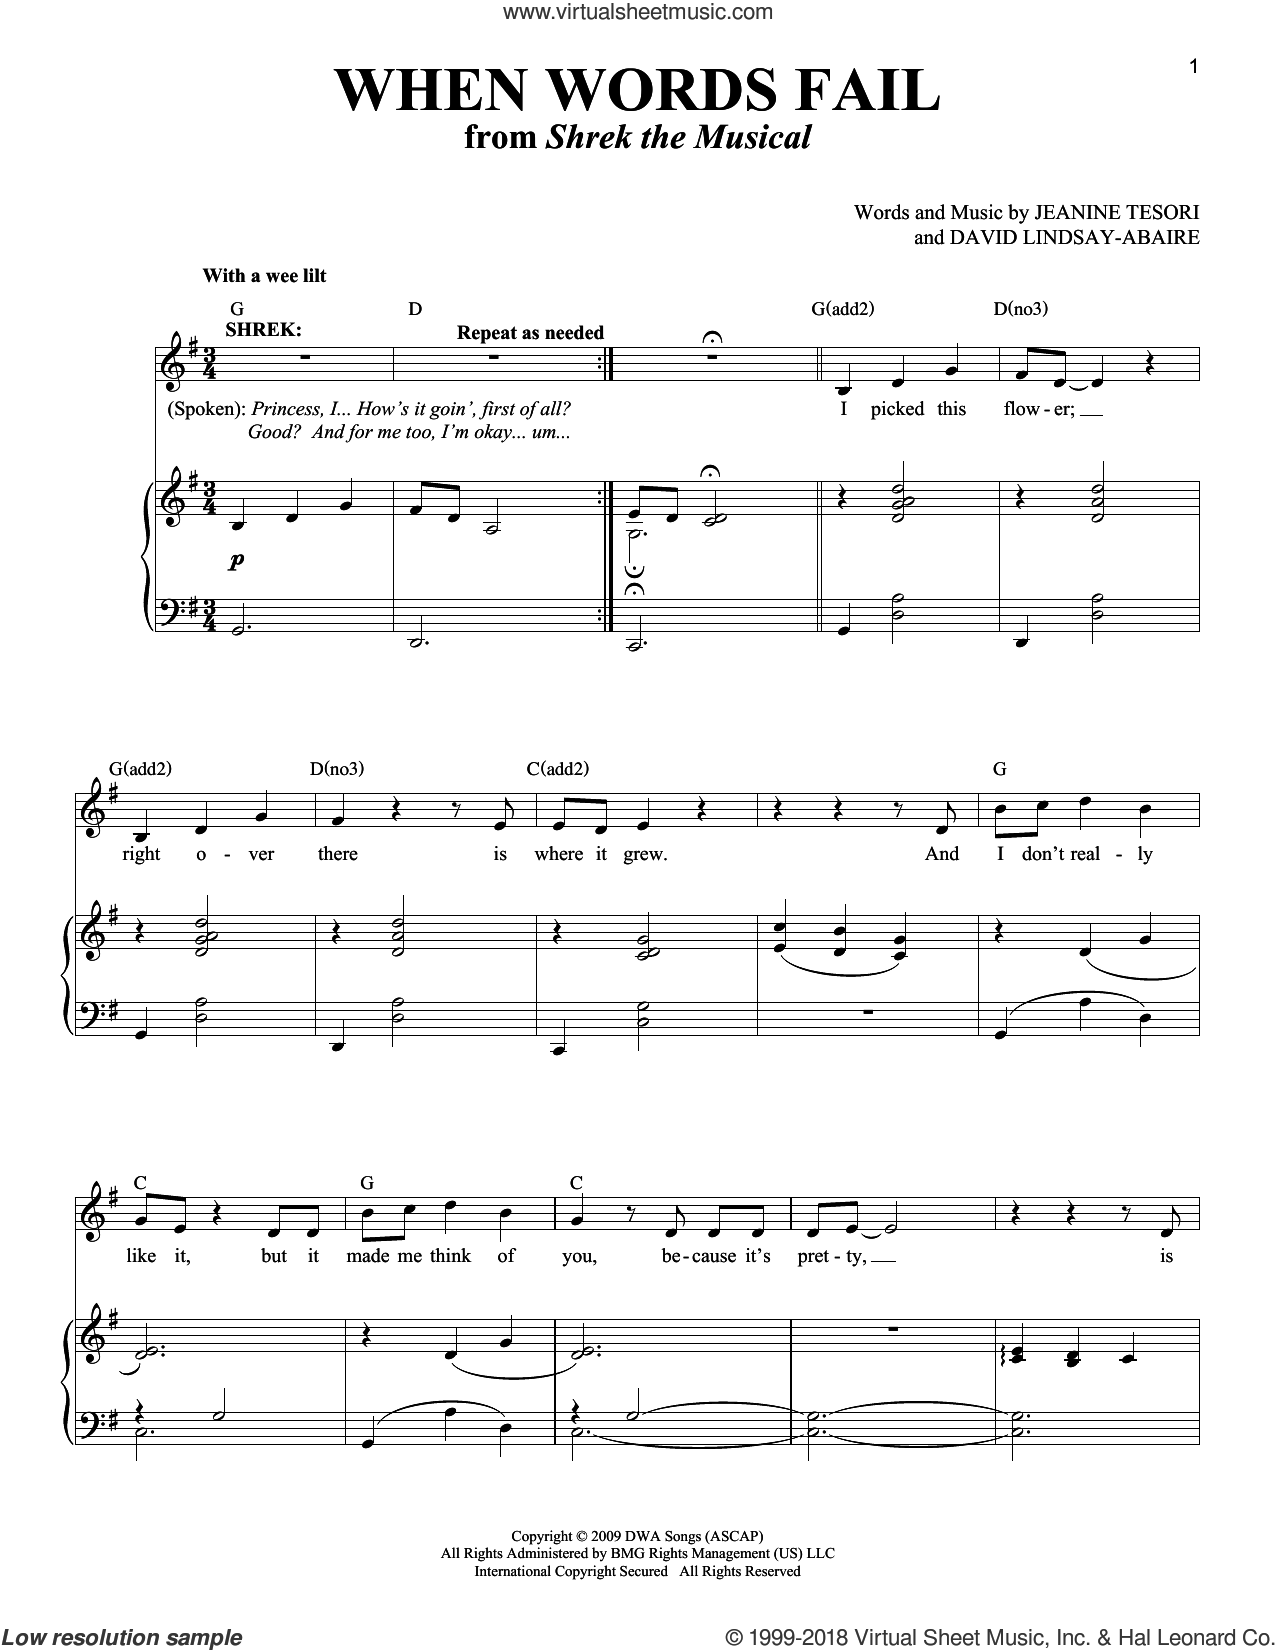 When Words Fail sheet music for voice and piano by Jeanine Tesori & David Lindsay-Abaire, Richard Walters, David Lindsay-Abaire and Jeanine Tesori. Score Image Preview.